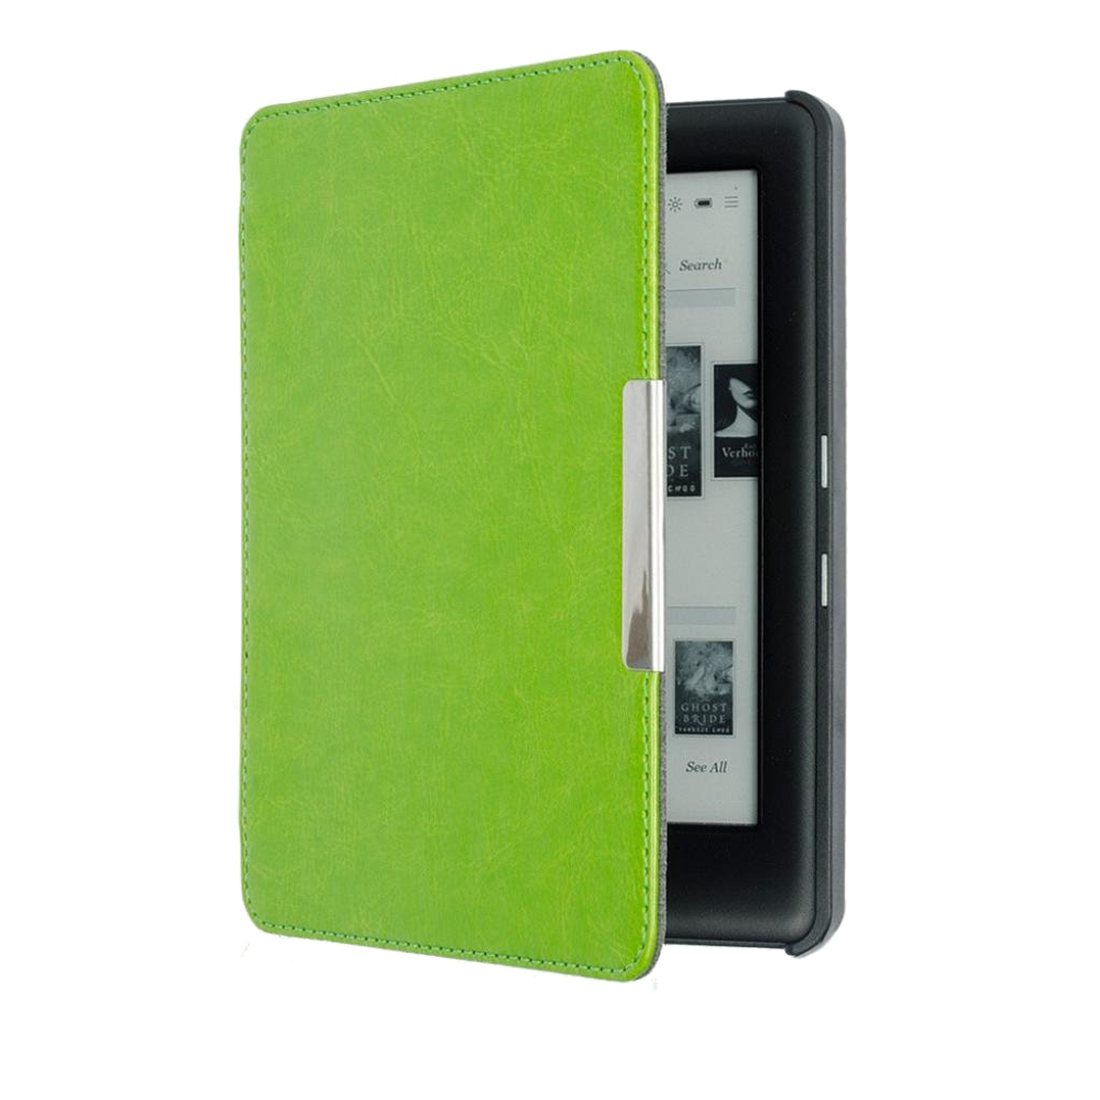 Case for KOBO GLO HD 6.0 eReader Magnetic Auto Sleep Cover Ultra Thin Hard Shell (Green) magnetic auto sleep slim cover case hard shell for kobo glo hd 6 0inch dec21